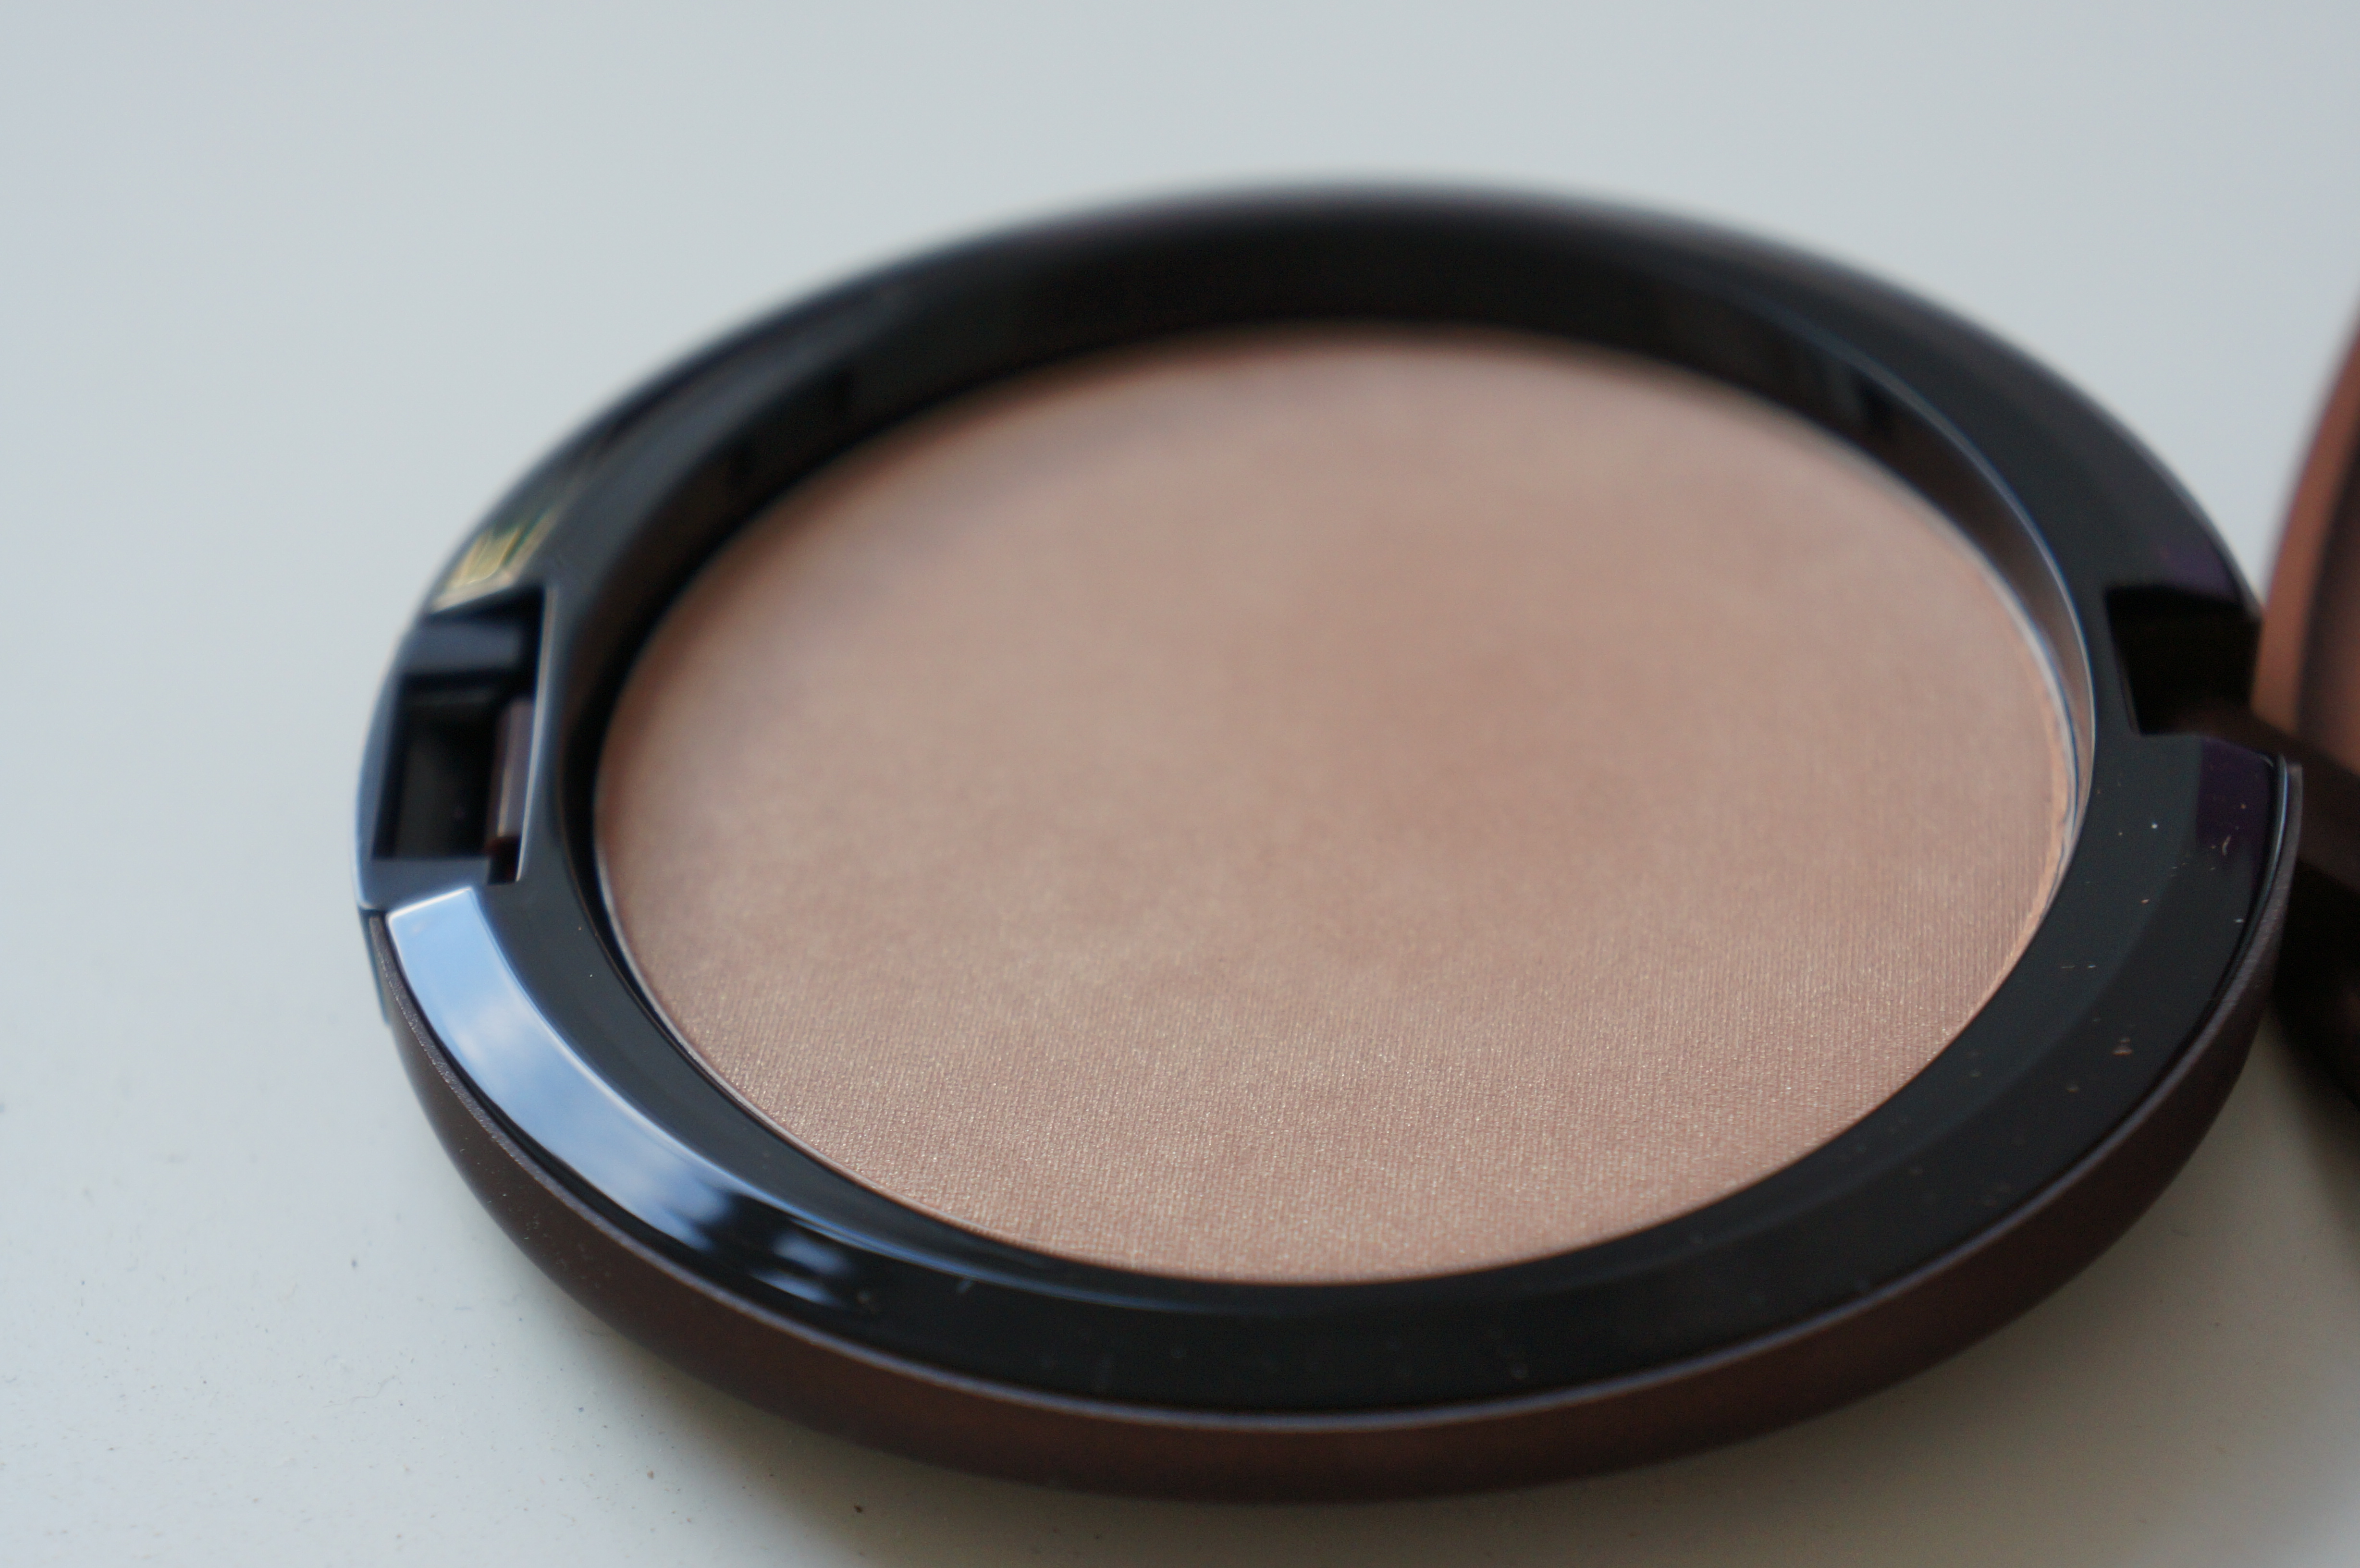 MAC Bronzing Powder in Soft Sands/ Pic by kiwikoo